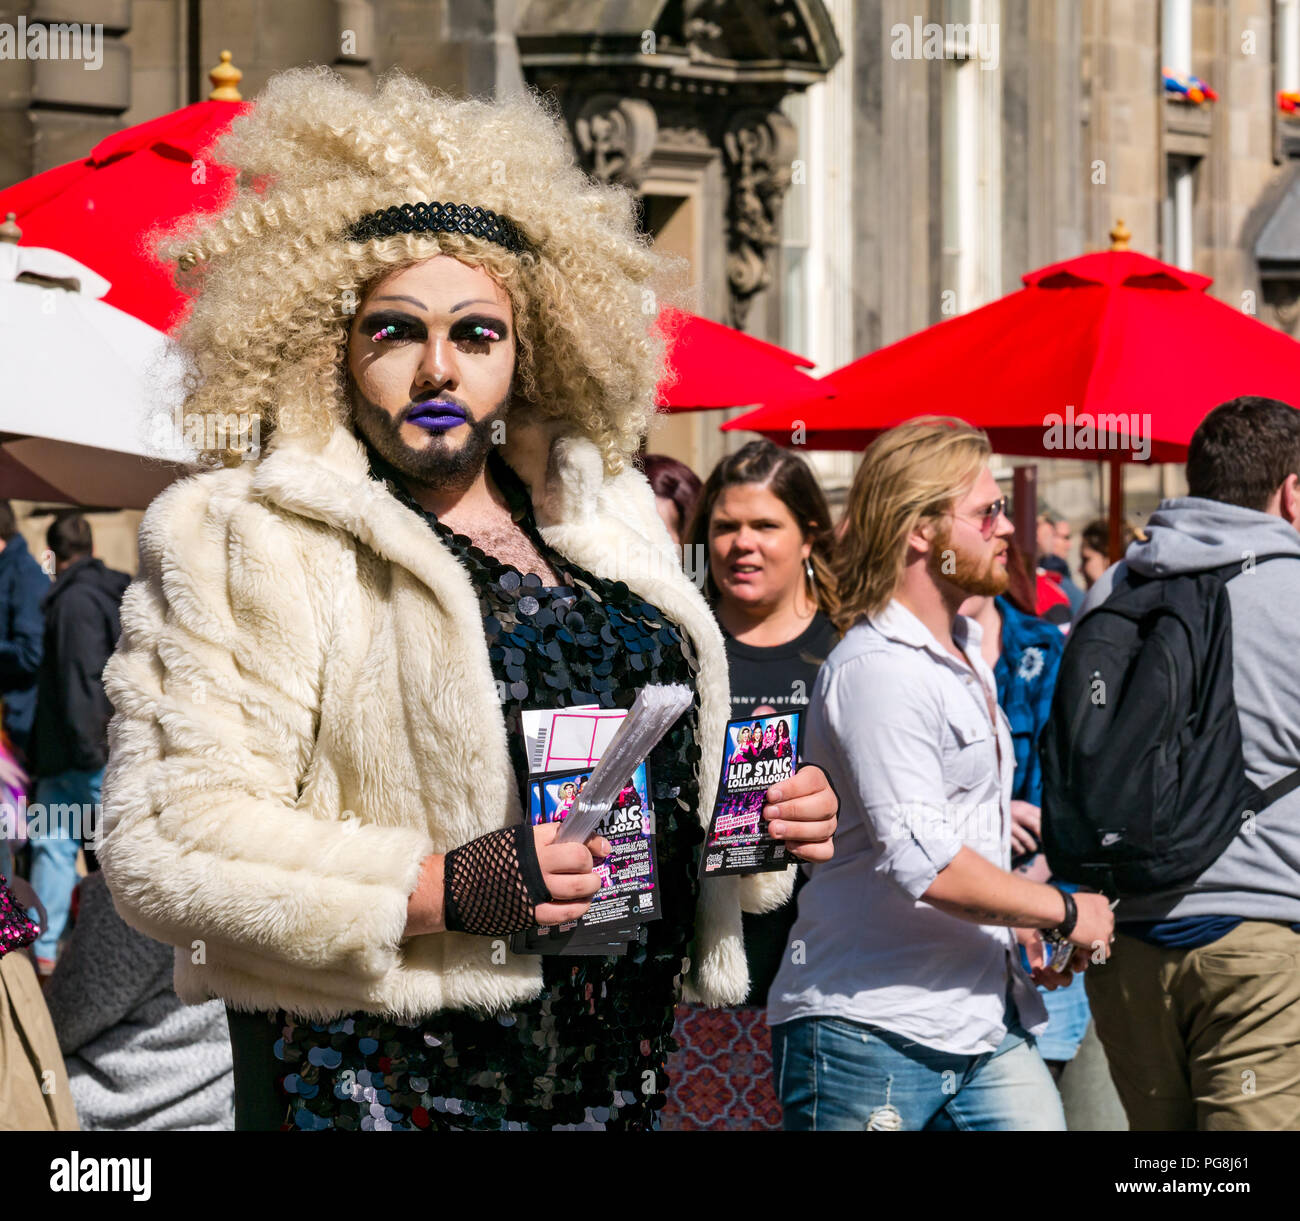 Edinburgh Fringe Festival,, Edinburgh, Scotland, UK. 24th August 2018.  The sun shines on Fringe goers and a festival performer at the Virgin Money sponsored street venue on the Royal Mile. A man wearing make up, a blonde wig and a fur coat in drag queen costume handing out flyers for his Fringe show called Lip Sync Lollapalooza - Stock Image